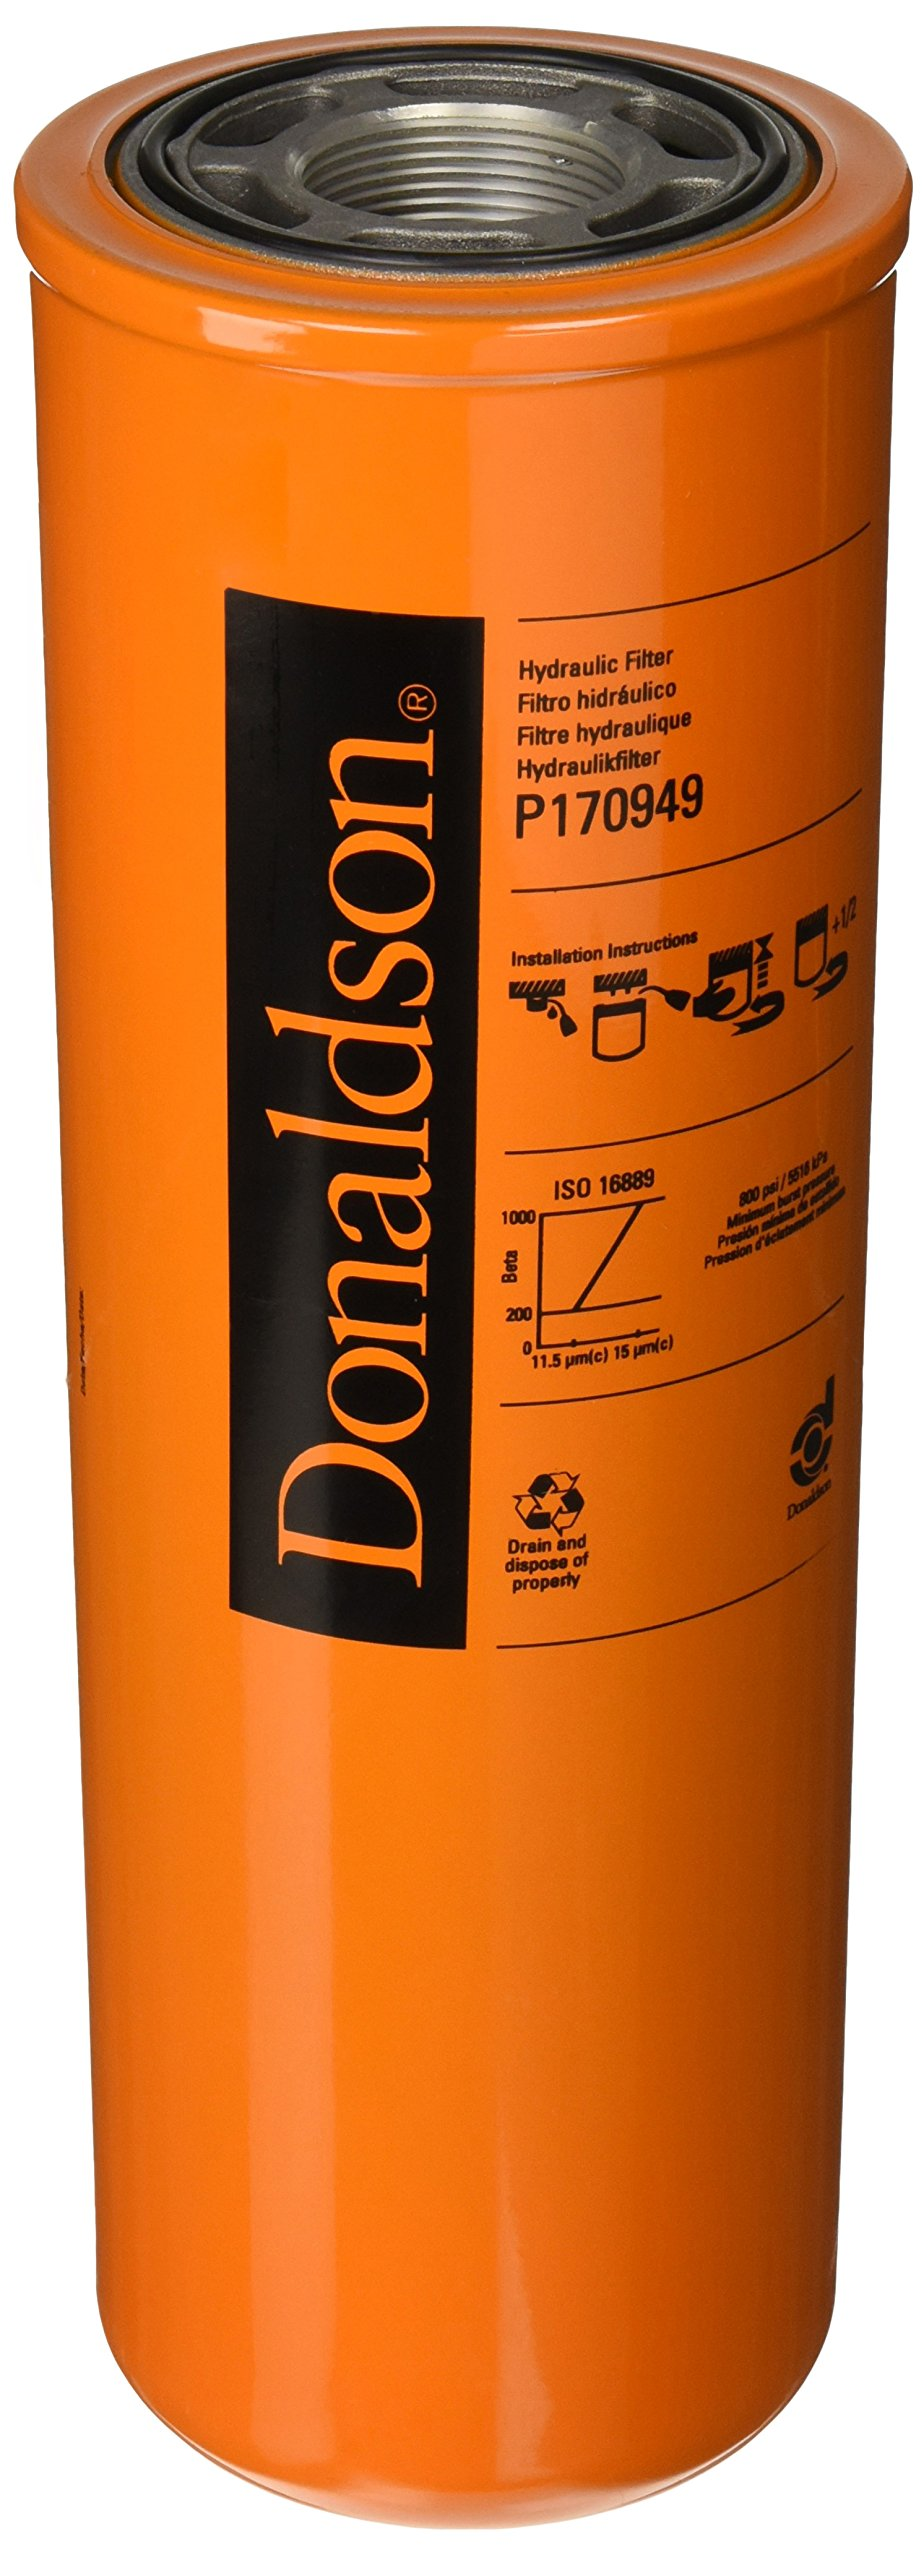 Donaldson P170949 Hydraulic Filter, Spin-on